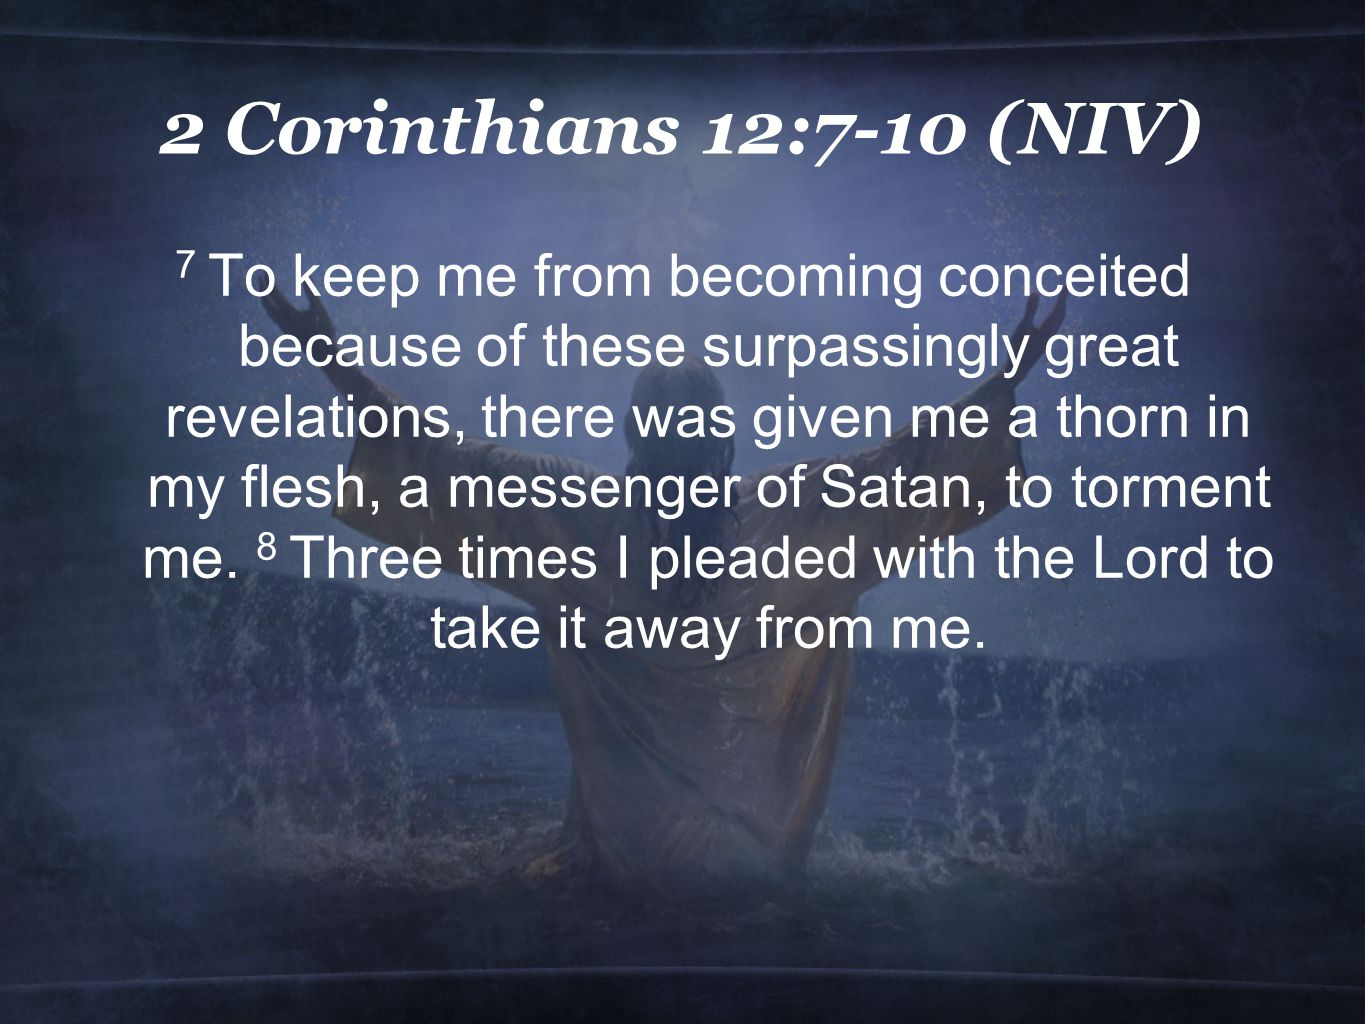 2 Corinthians 12:7-10 (NIV) 7 To keep me from becoming conceited because of these surpassingly great revelations, there was given me a thorn in my flesh, a messenger of Satan, to torment me.